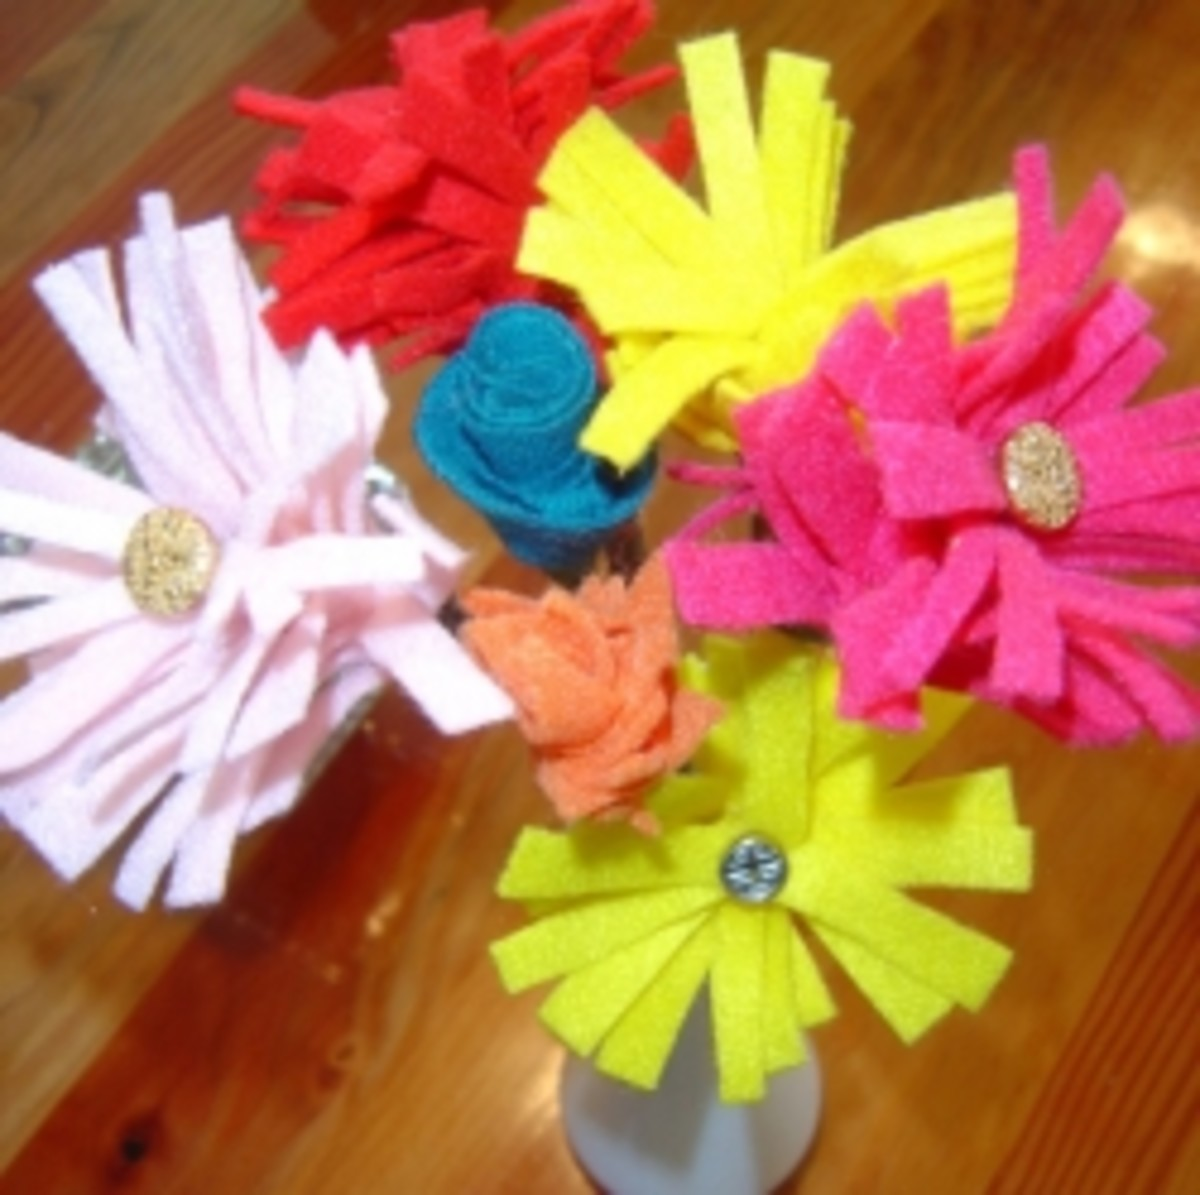 Felt Crafts - Versatile and Fun